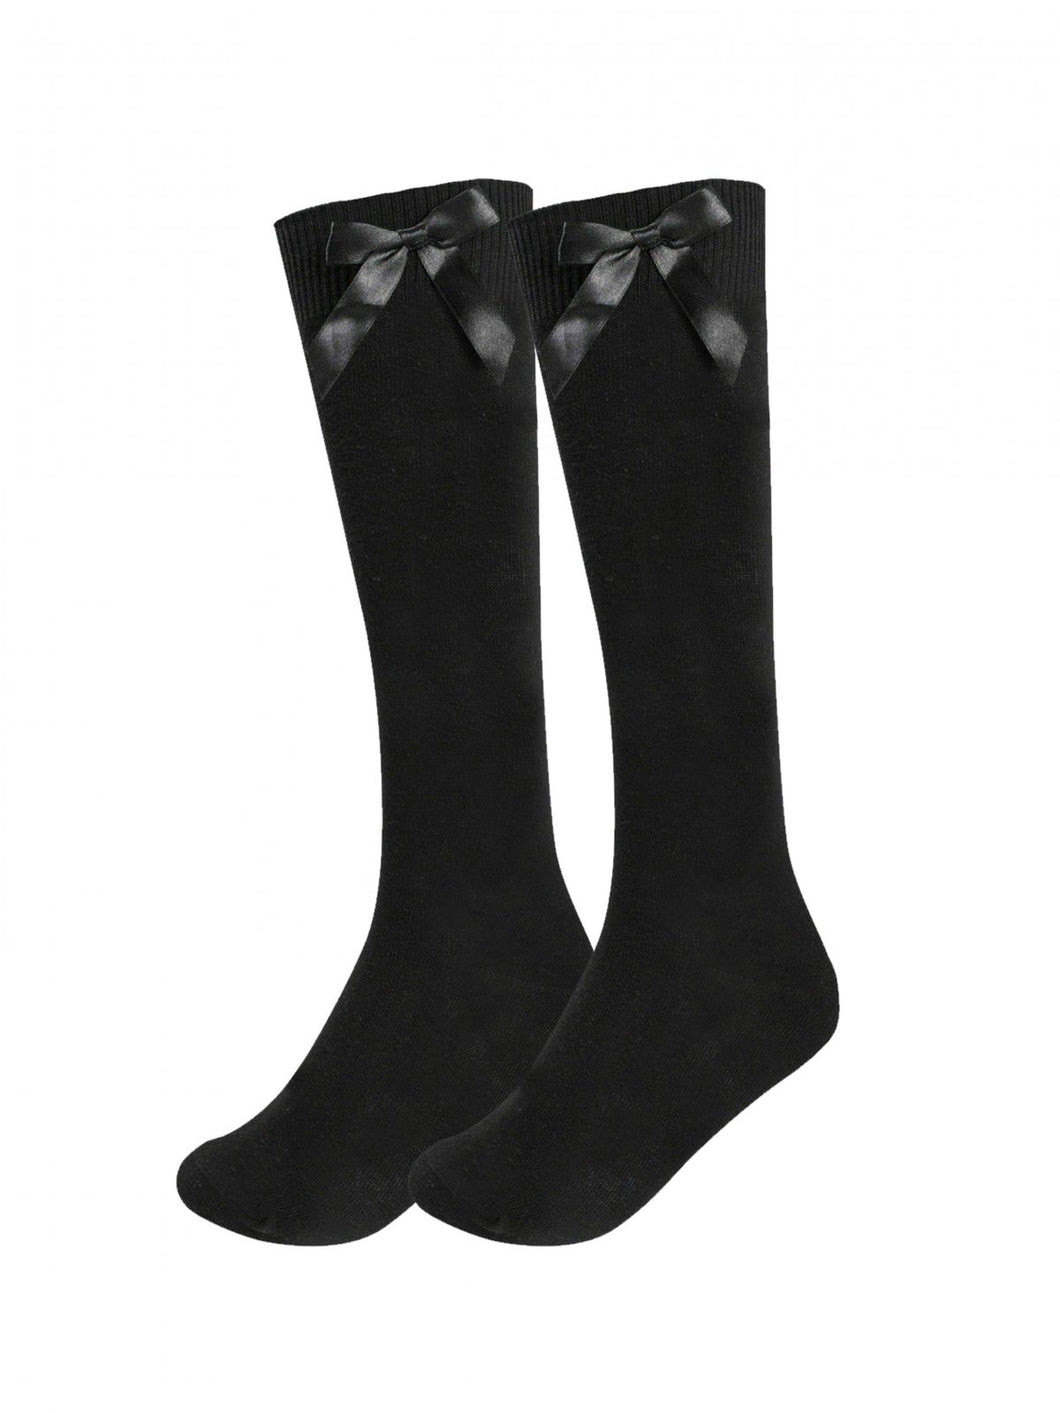 1 Pack Black Knee high Socks with bow